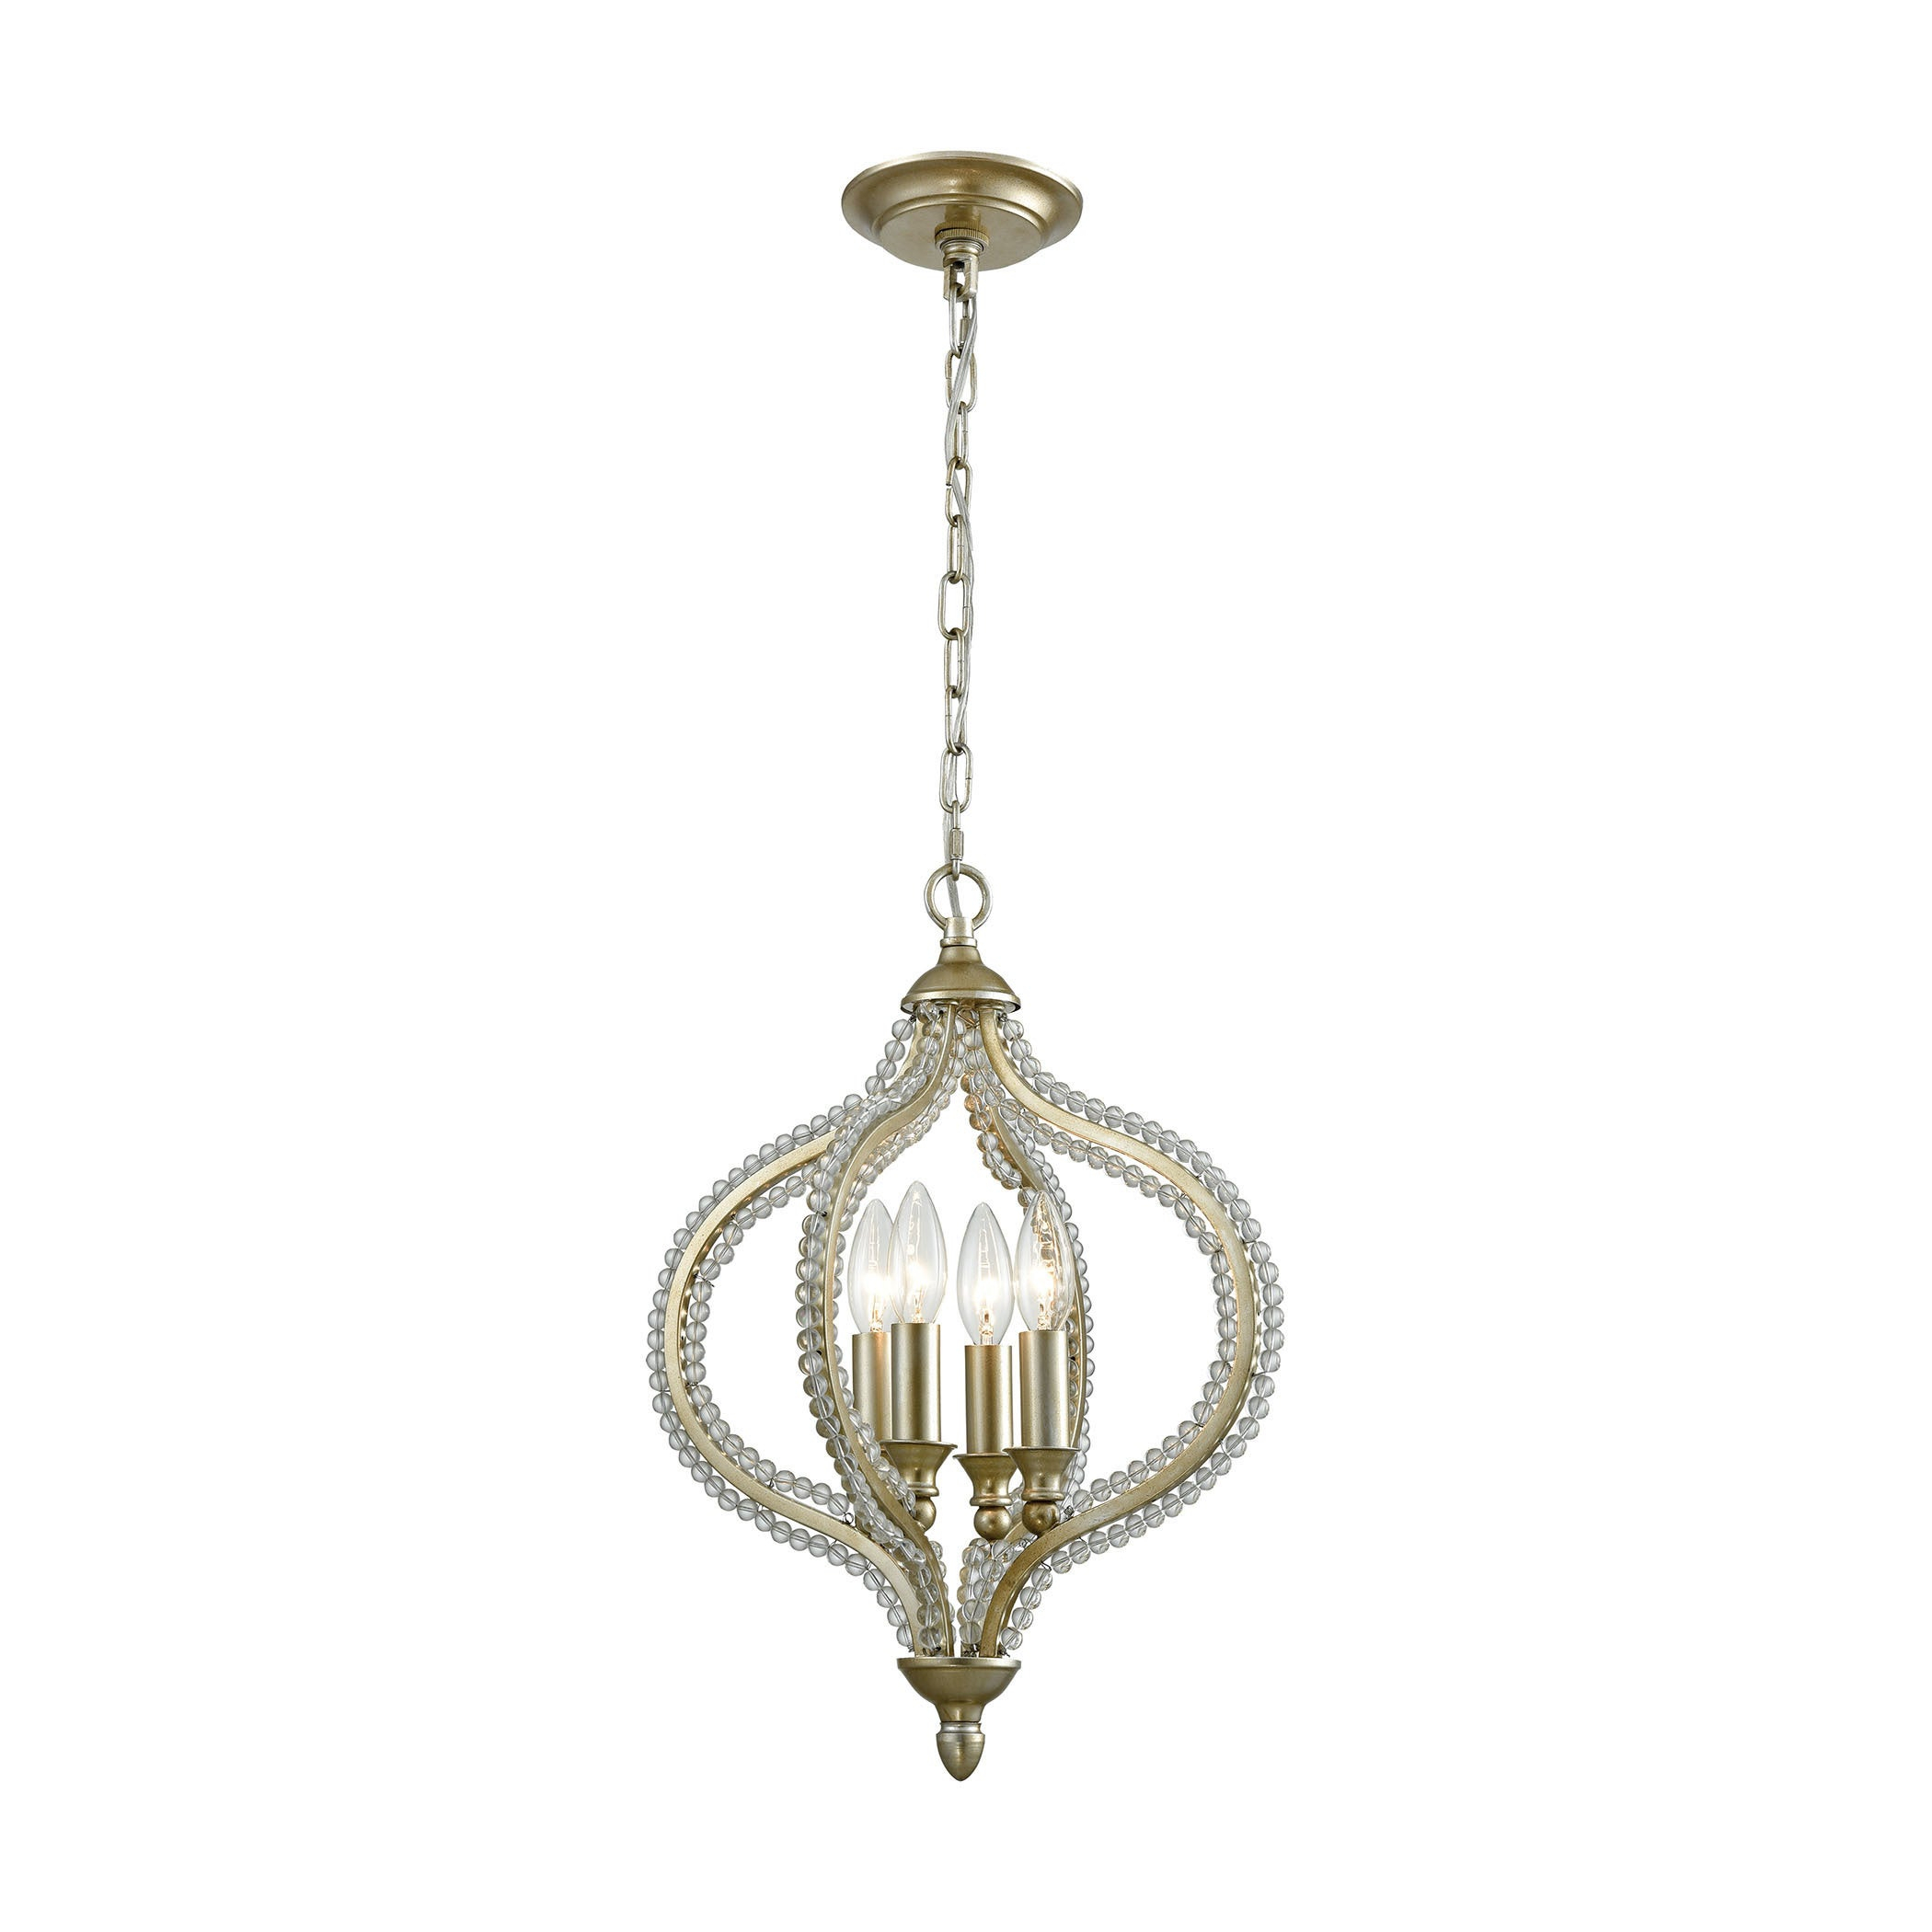 Bennington 4 Light Pendant, Aged Silver With Regard To Bennington 4 Light Candle Style Chandeliers (View 13 of 30)